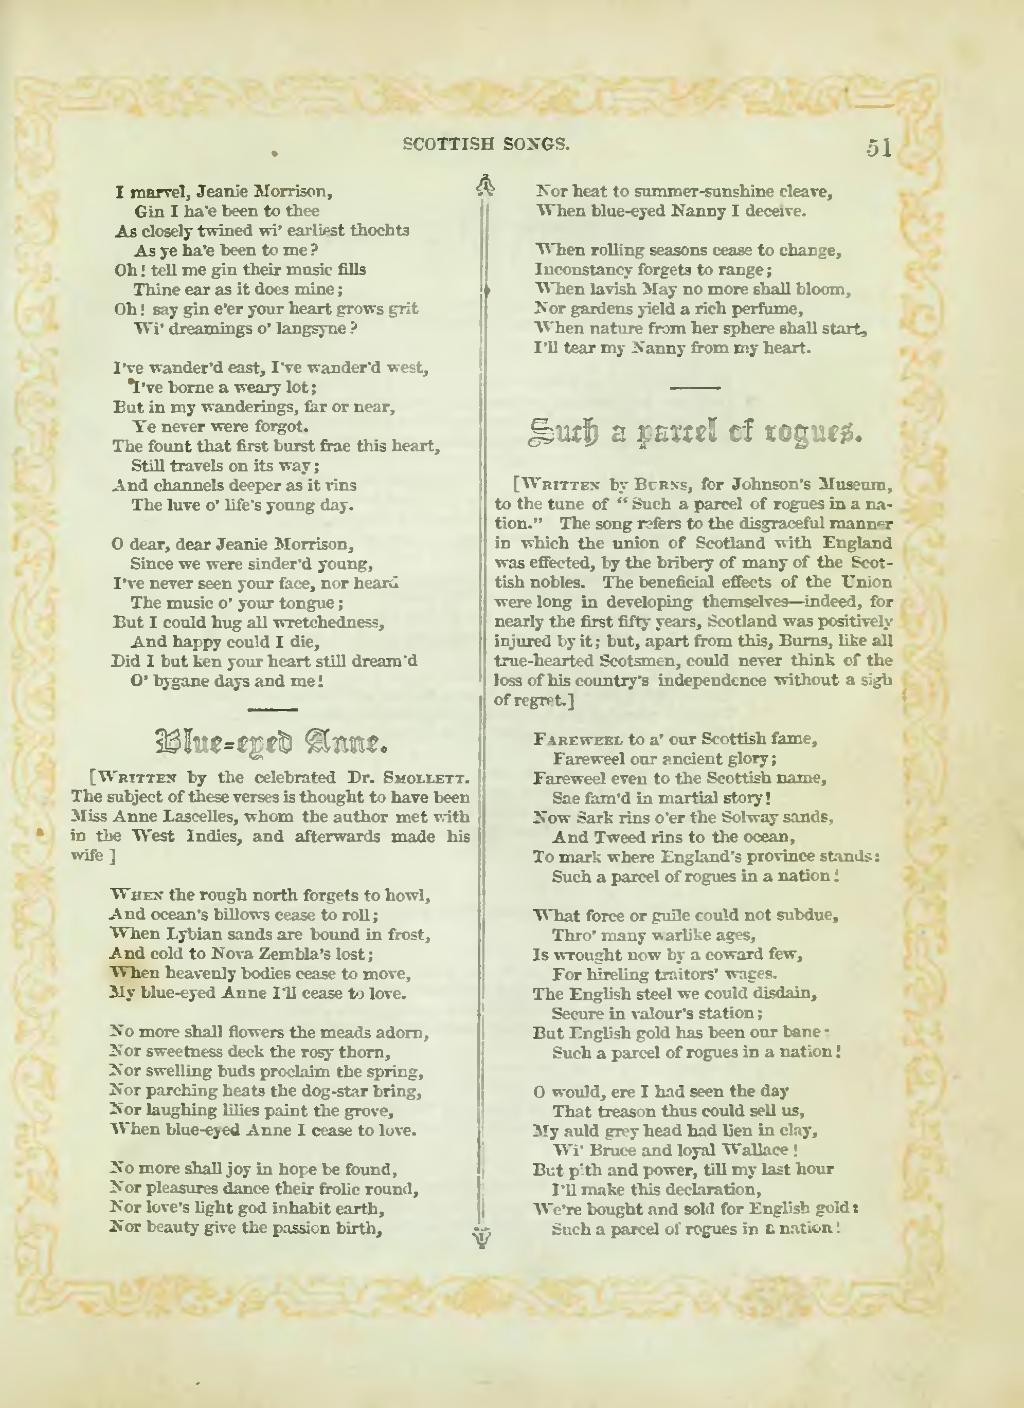 page the book of scottish song djvu 69 wikisource the free online